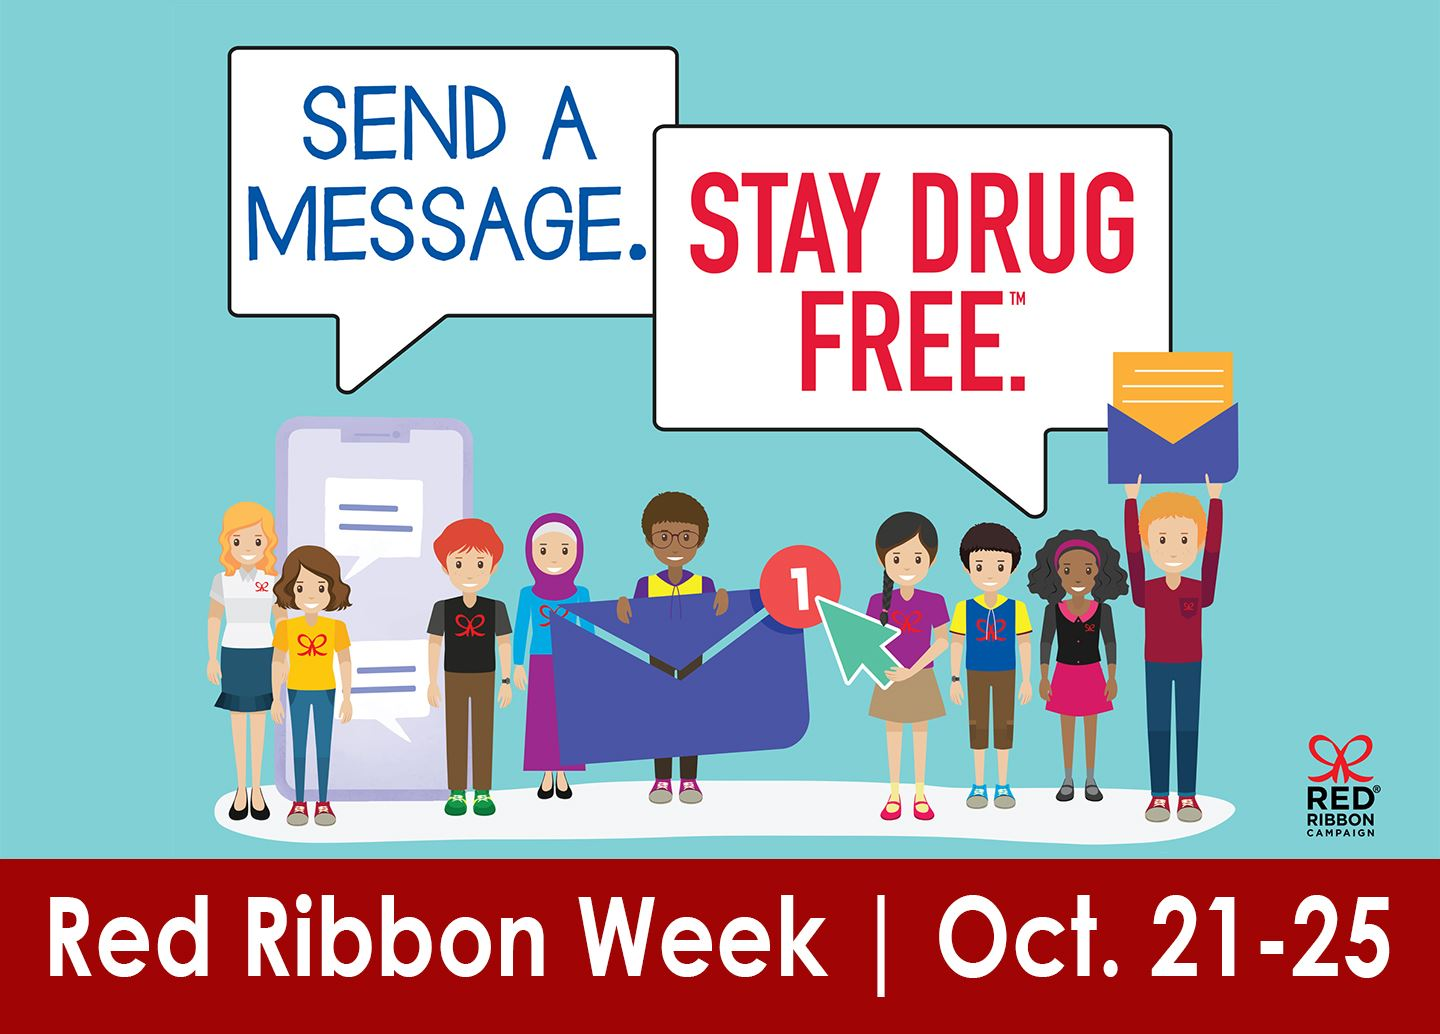 Send a message. Stay drug free. Red Ribbon Week from Oct. 21 - 25